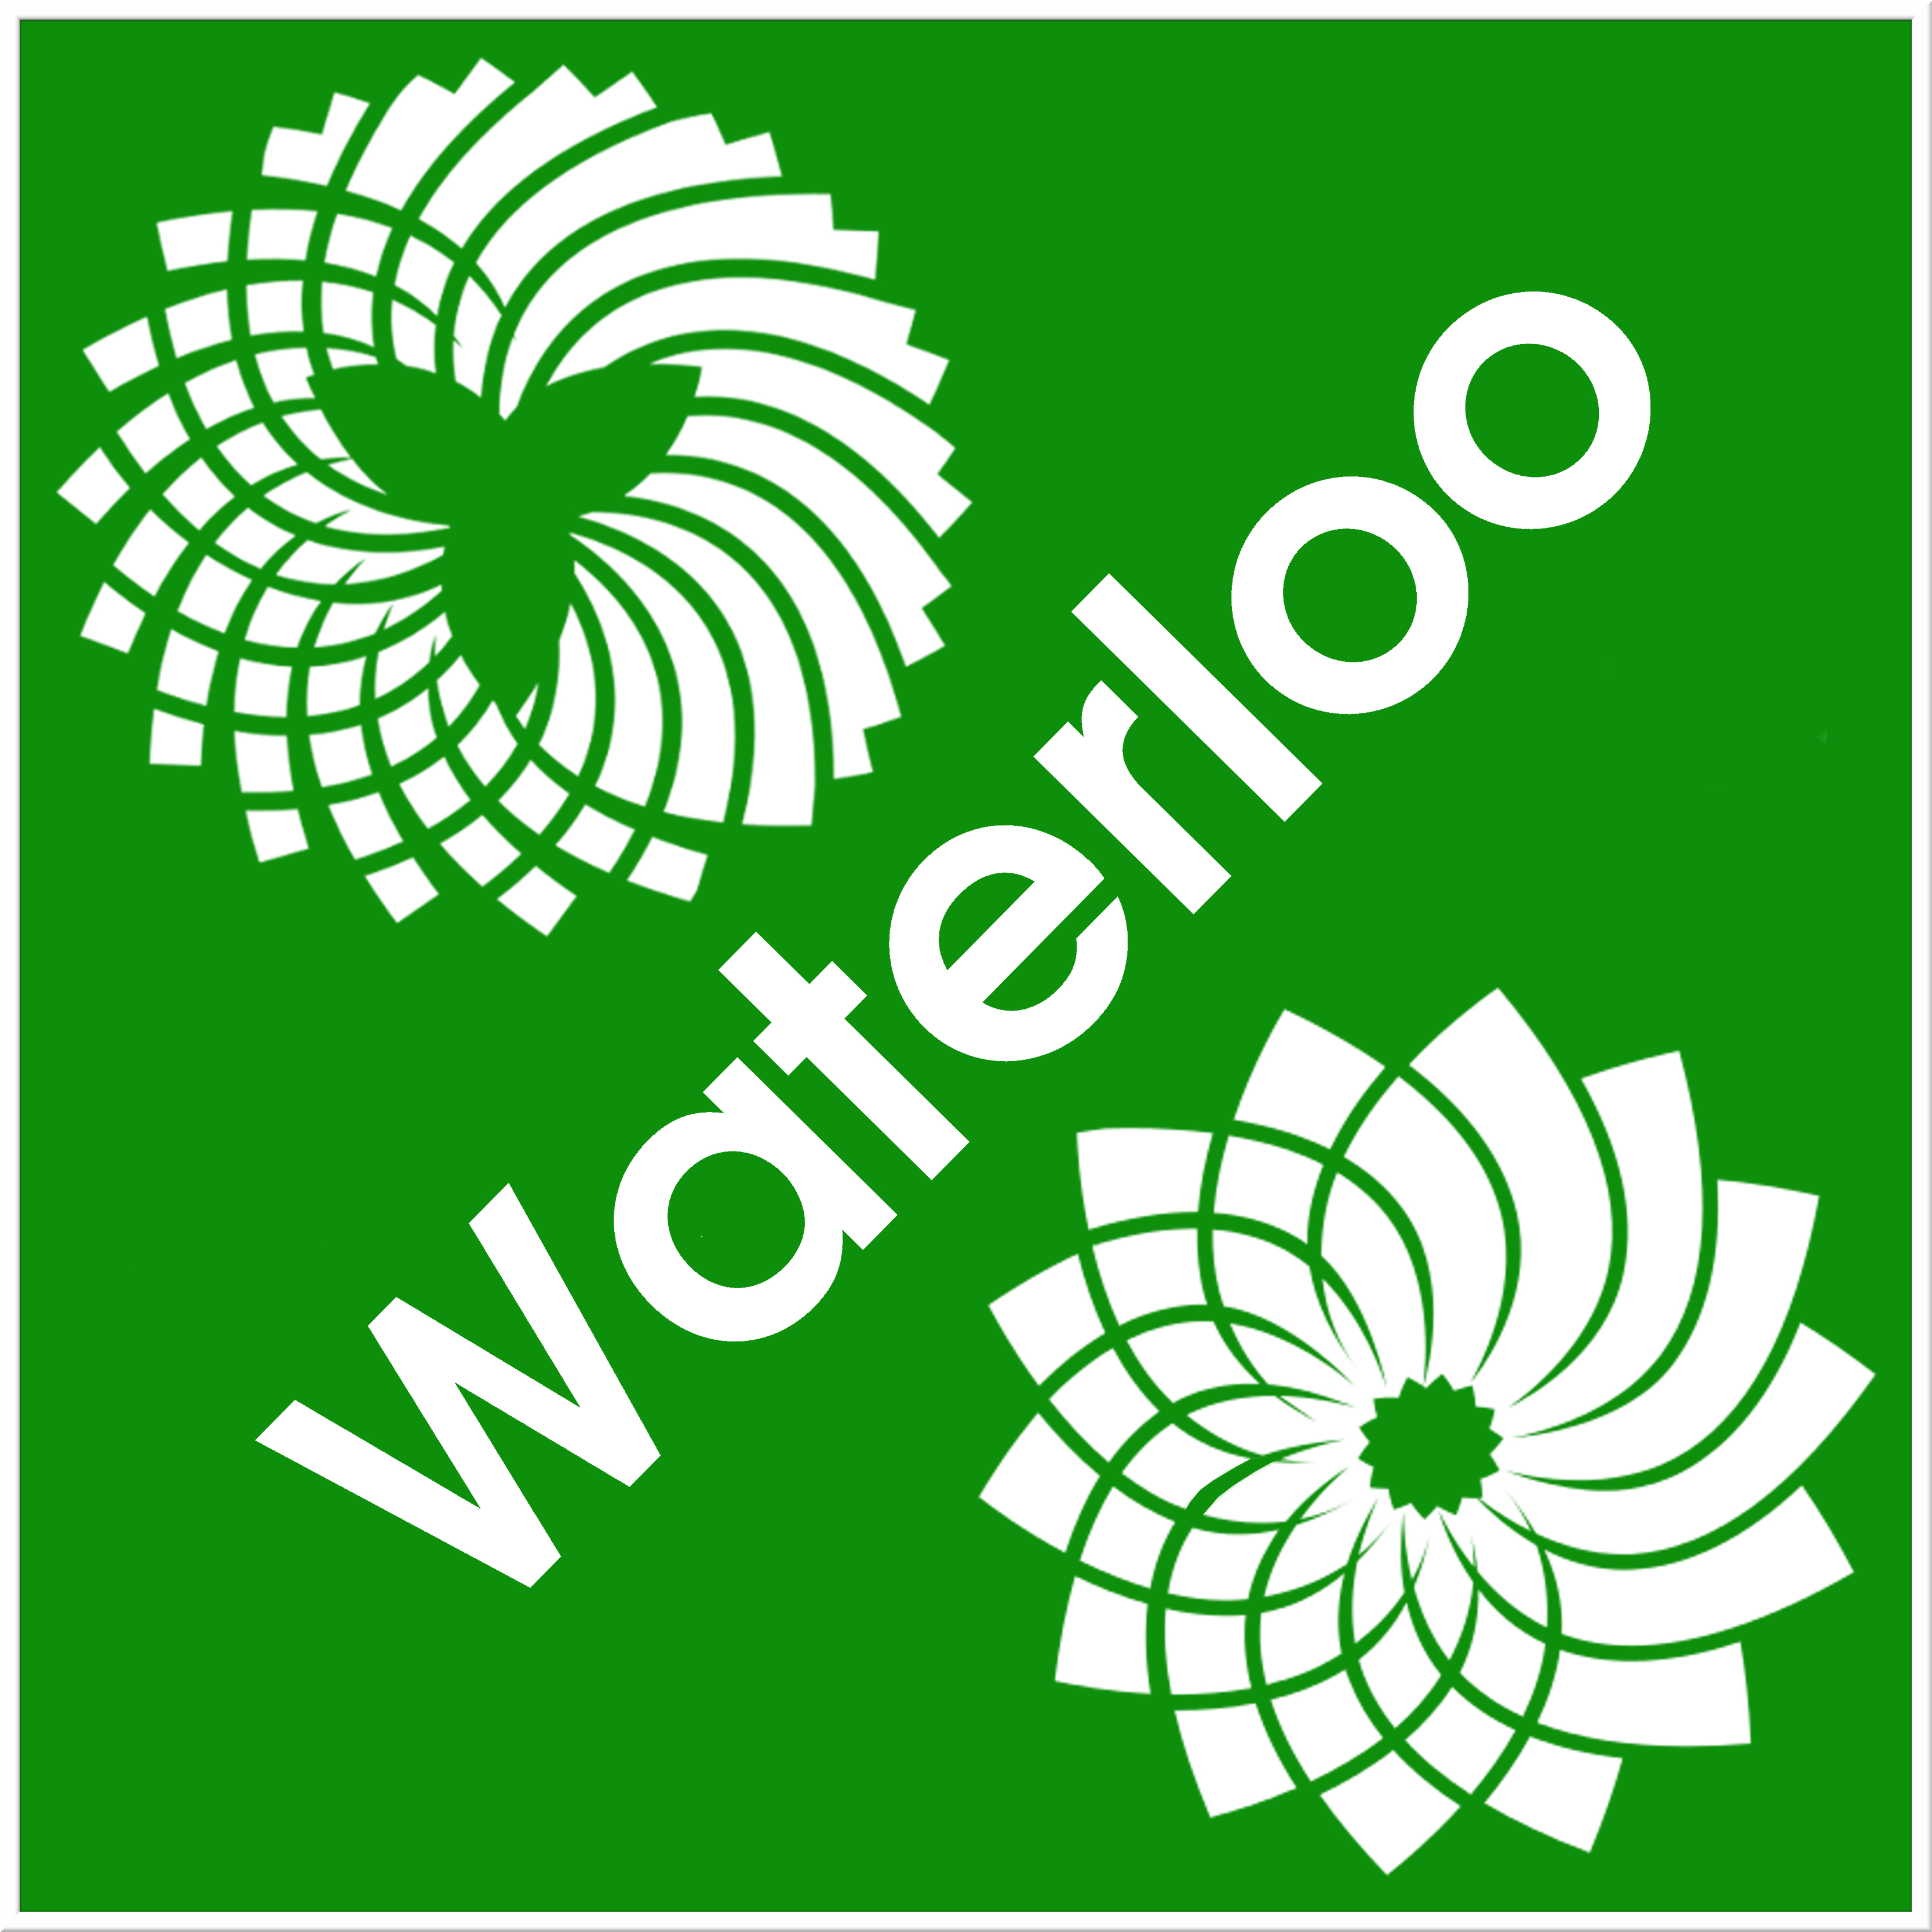 hosted by the Green Party of Waterloo